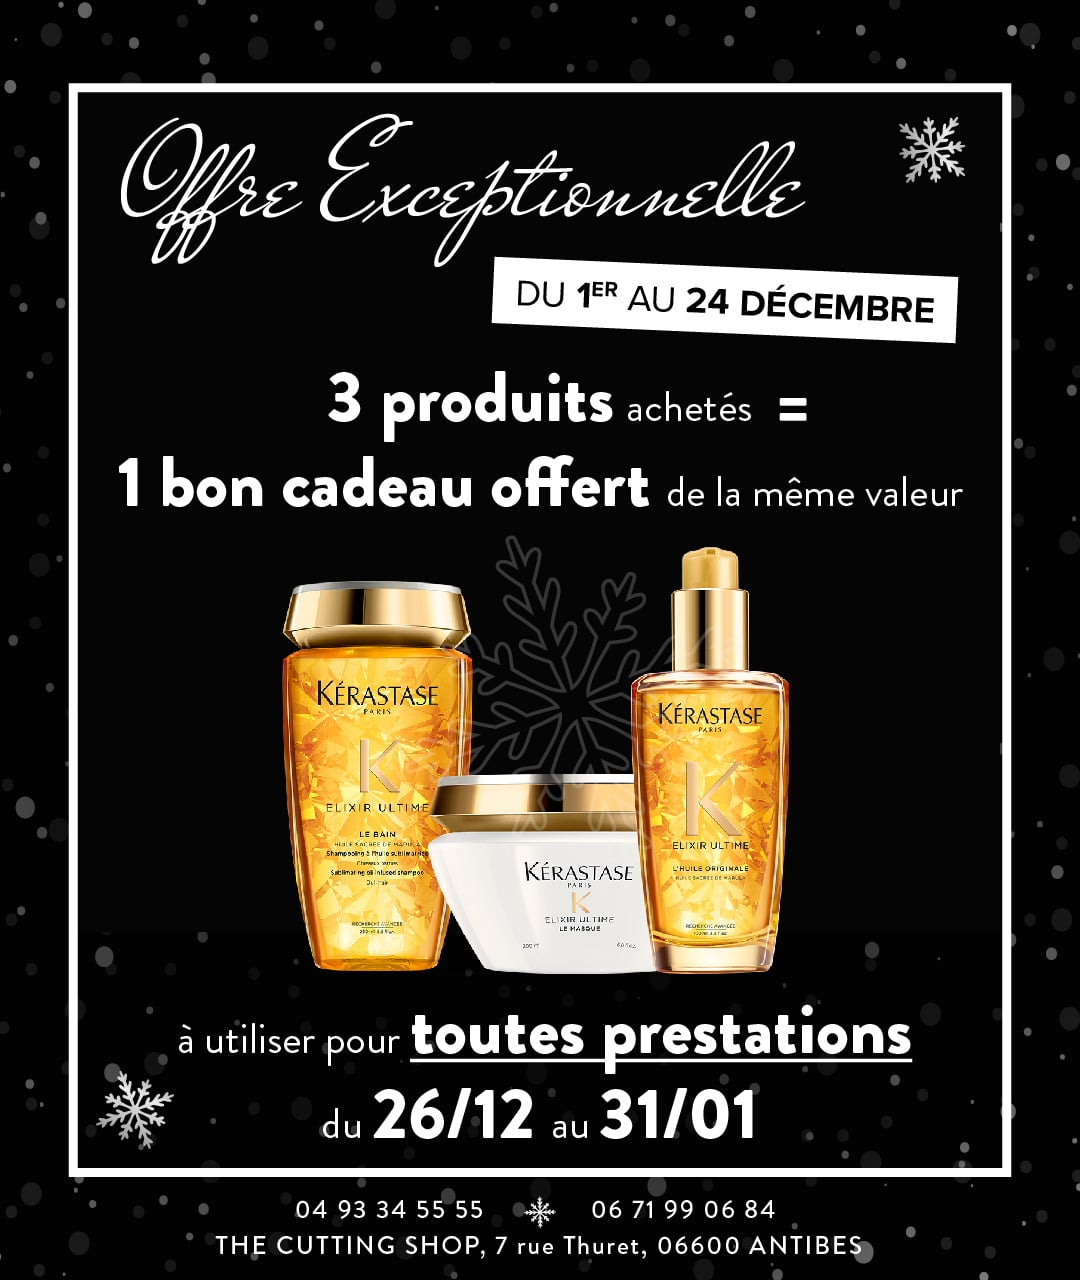 Very special offer for Christmas – The Cutting Shop Antibes